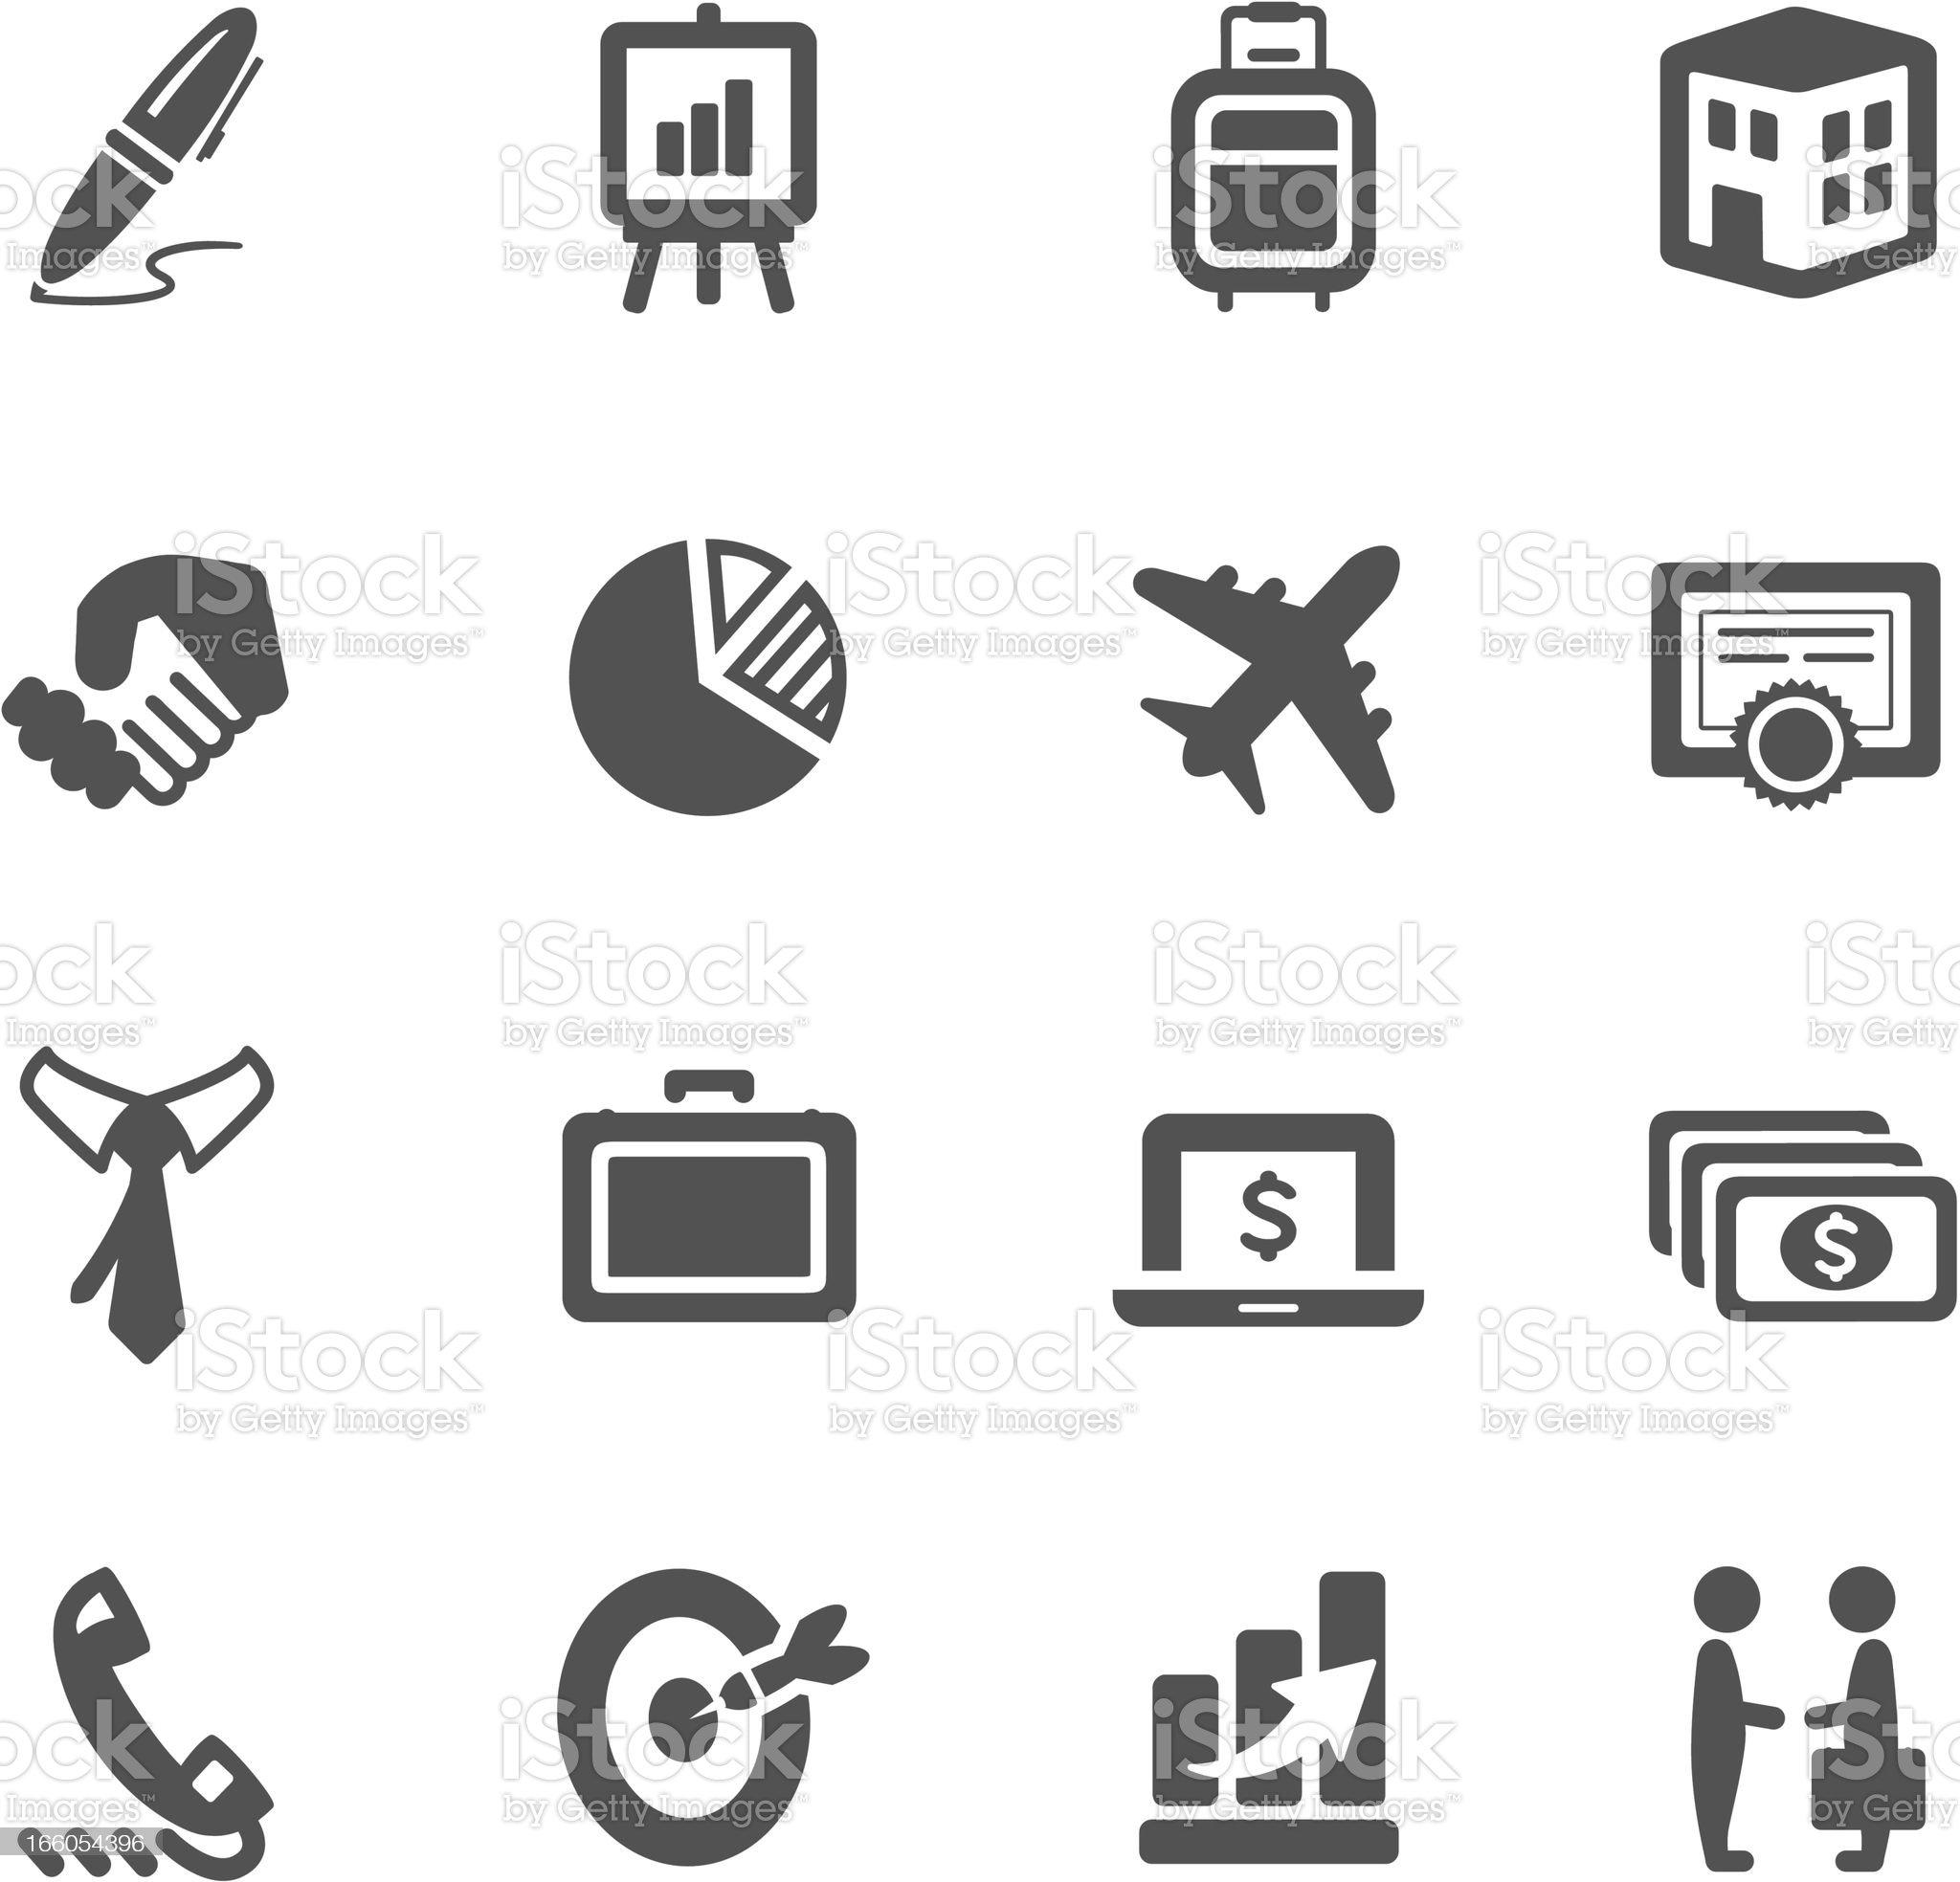 Sales Icons royalty-free stock vector art